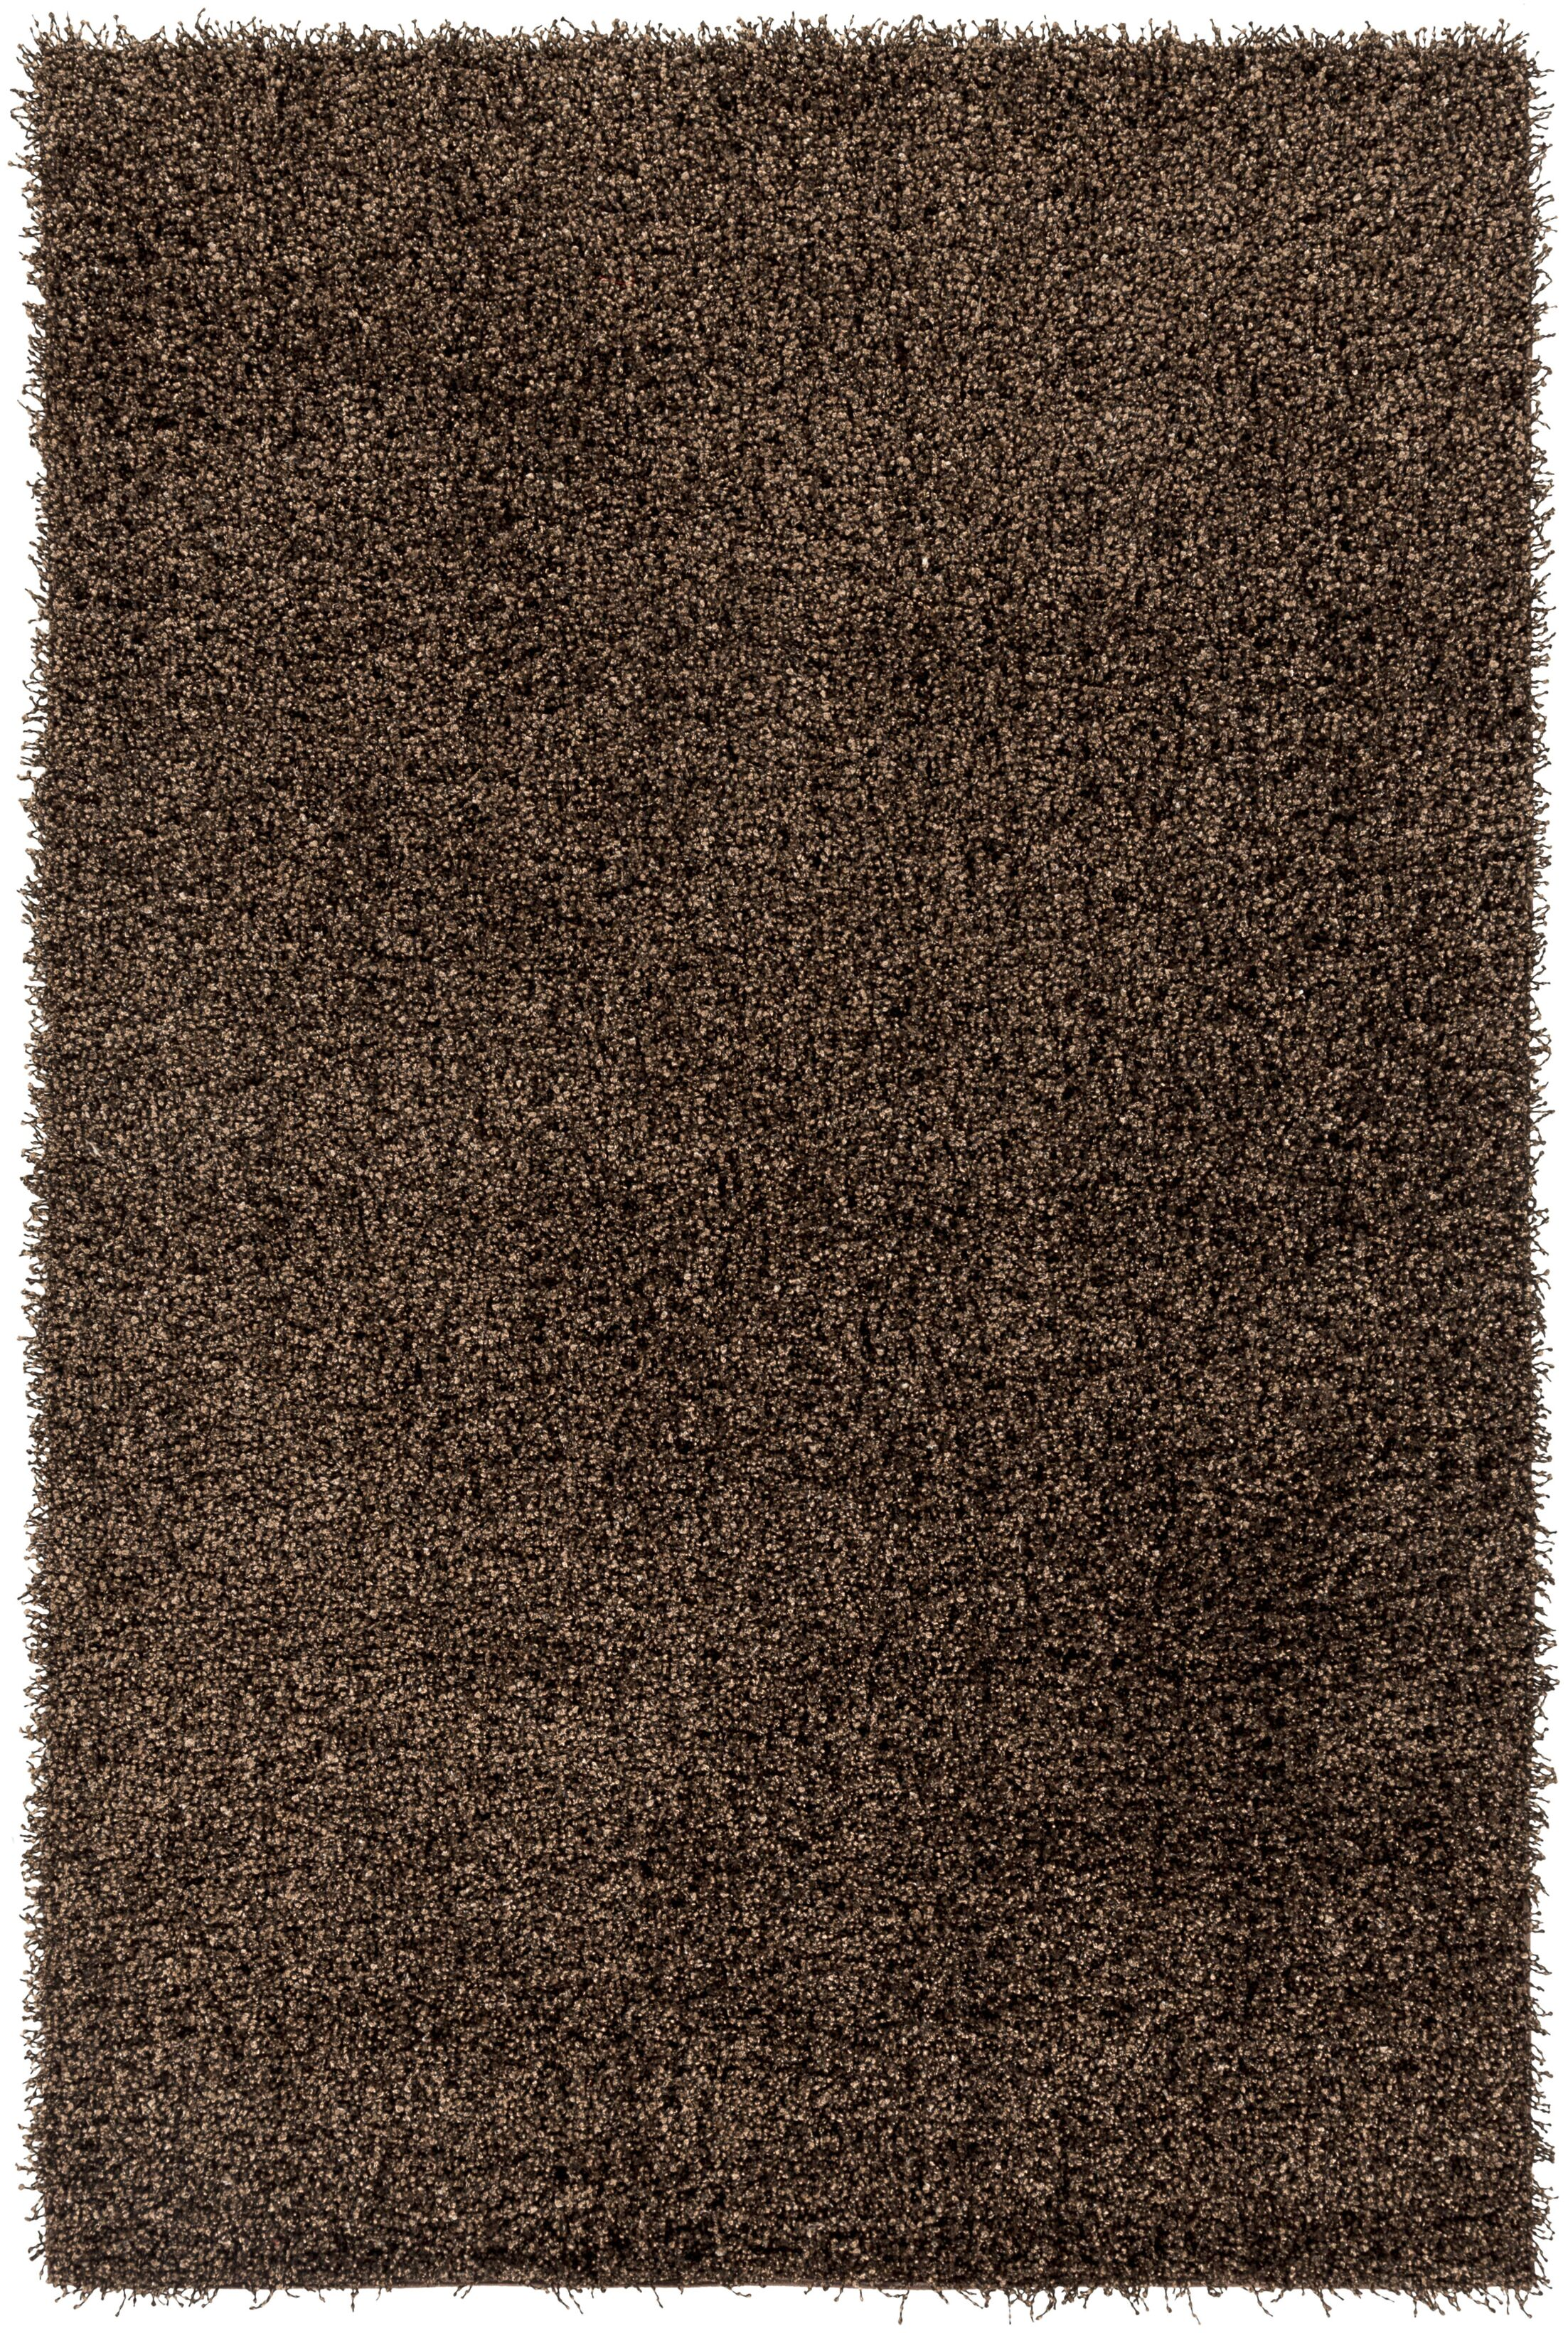 Mchaney Hand-Tufted Brown Area Rug Rug Size: Rectangle 4' x 6'